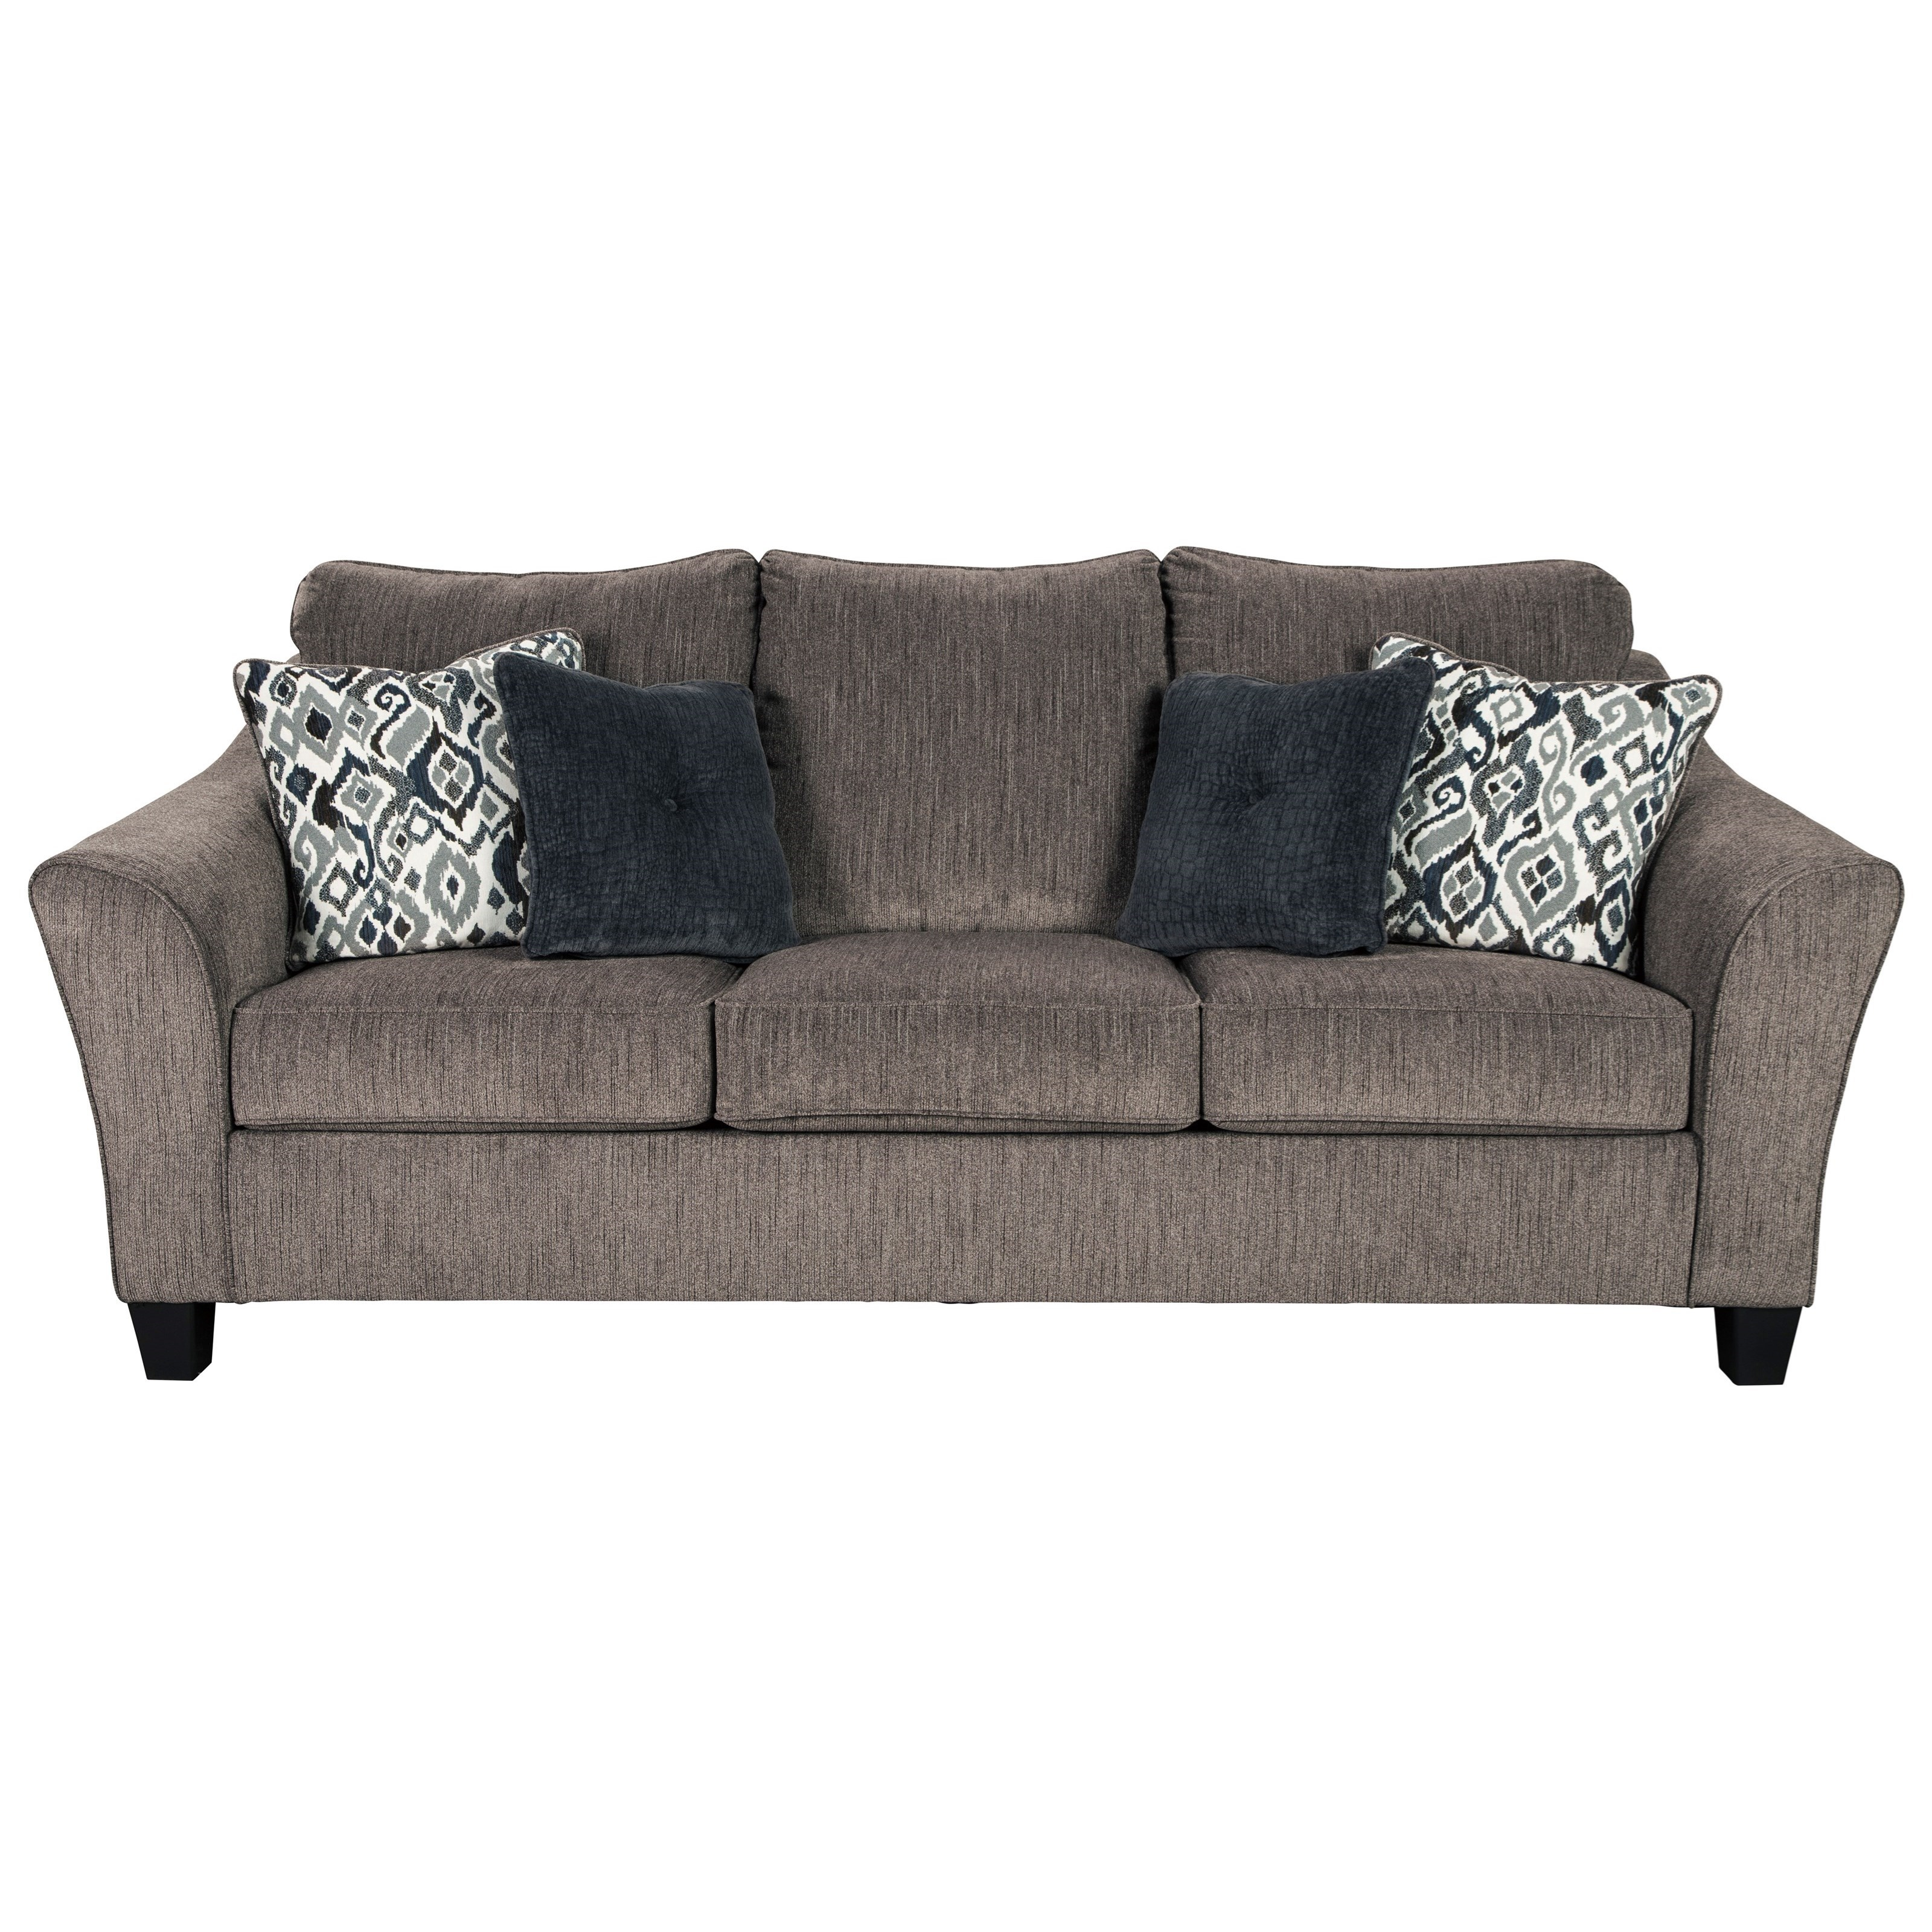 Theon Theon Queen Sofa Sleeper by Ashley at Morris Home